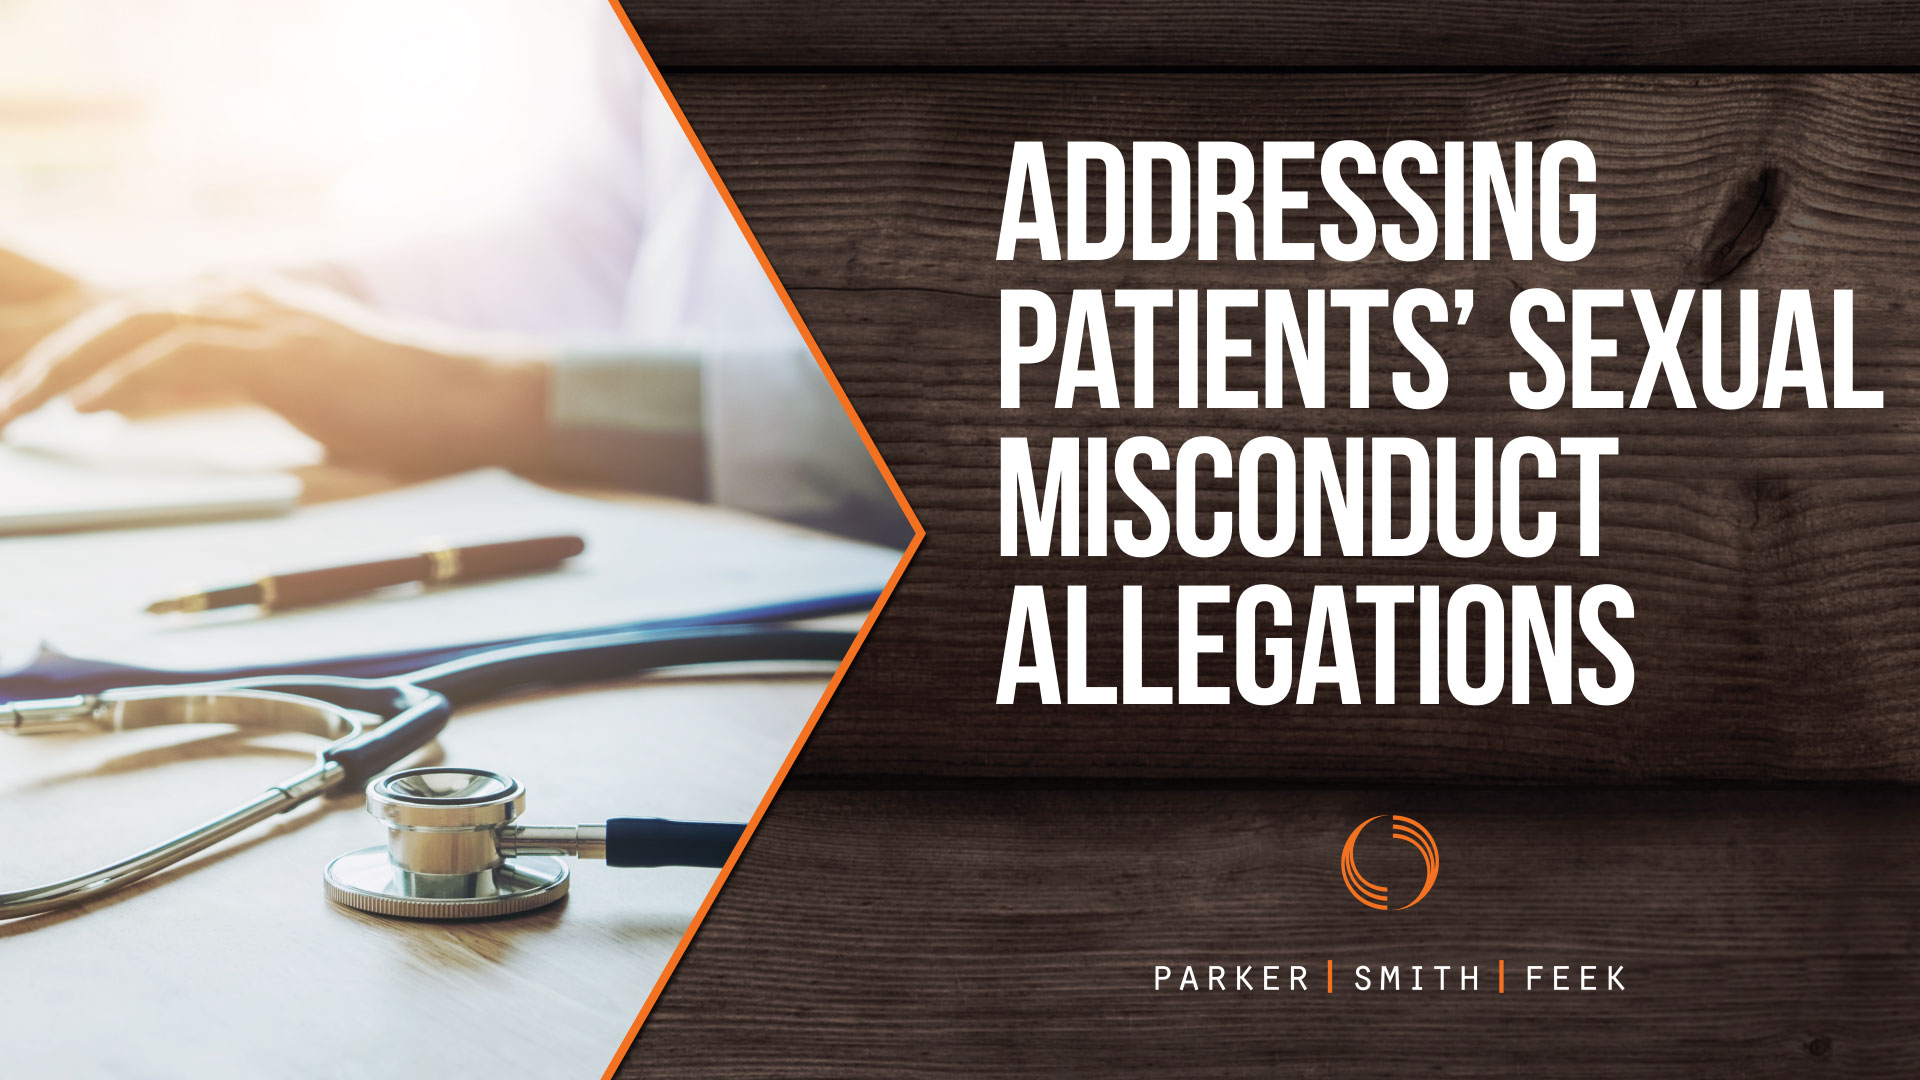 All healthcare organizations should have a plan in place to investigate and resolve any allegations of sexual misconduct – as well as prevent them from occurring in the first place. Watch to learn more from Parker, Smith & Feek's Clinical Risk Manager Danielle Donovan.